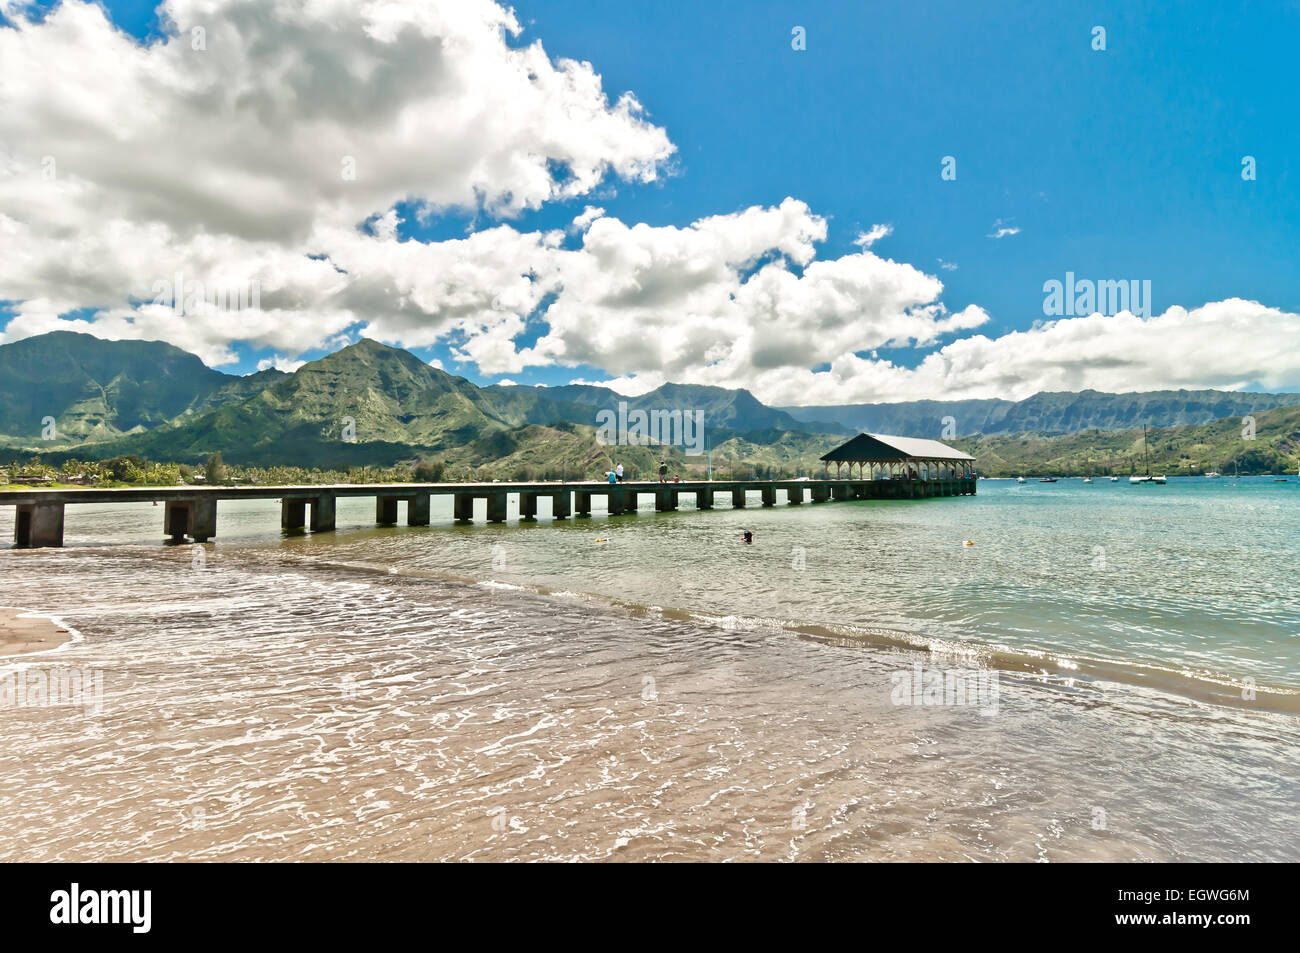 natural paradise Hanalei Bay, Kauai Island - Hawaii - Stock Image